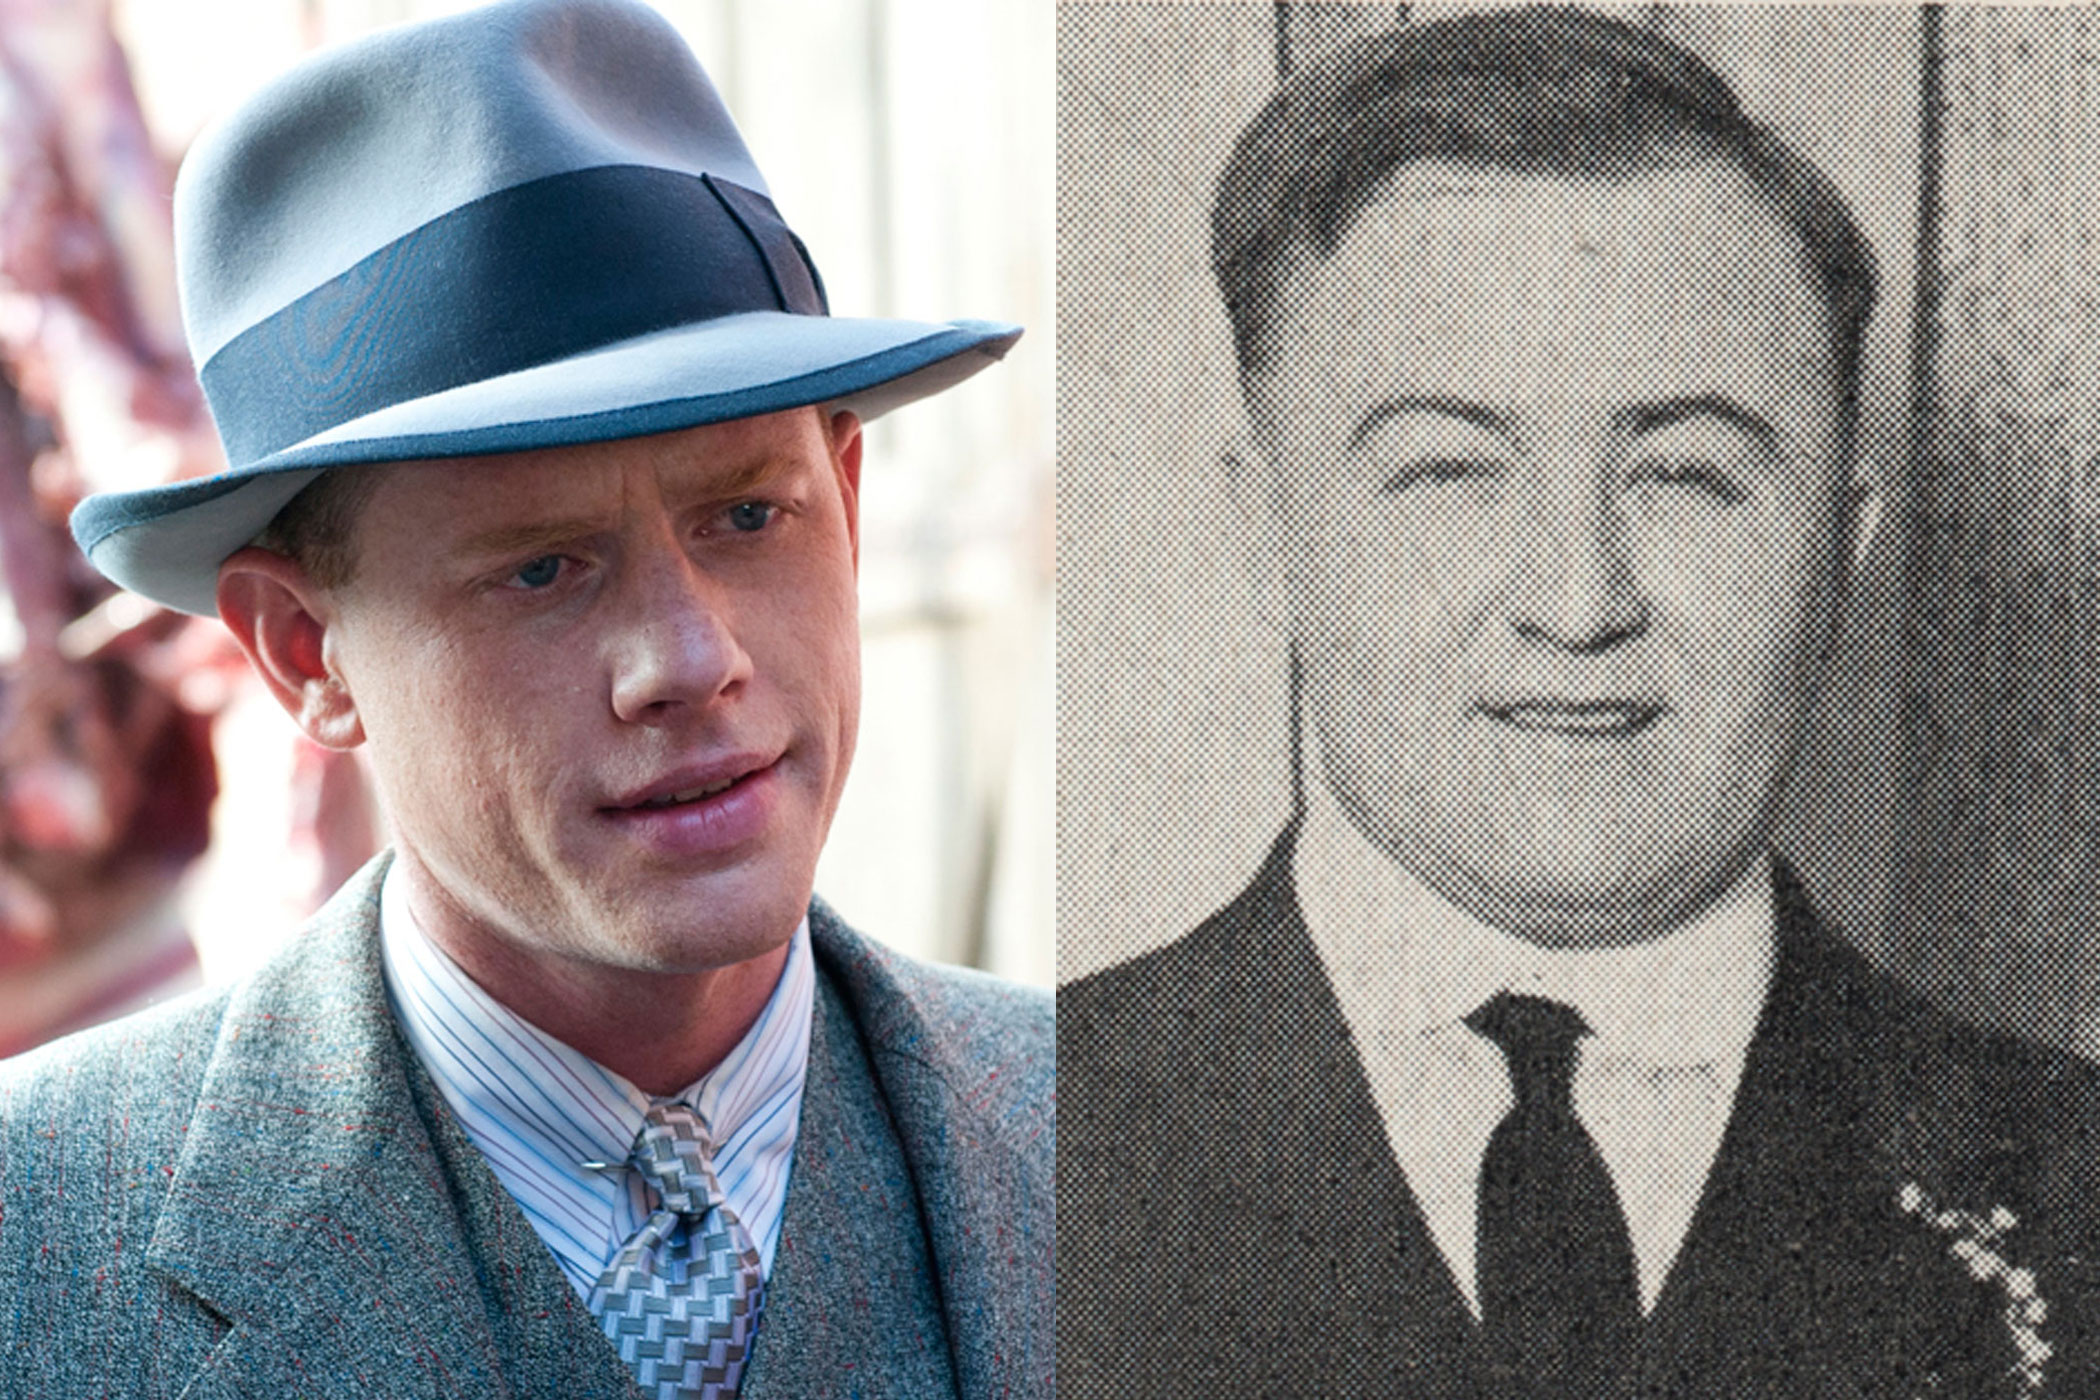 Dean O'Banion:                               Irish-American gangster Dean O'Banion, known as Dion O'Banion to many, was something of a rival to both Al Capone and Johnny Torrio, just like Arron Shiver's Boardwalk character.